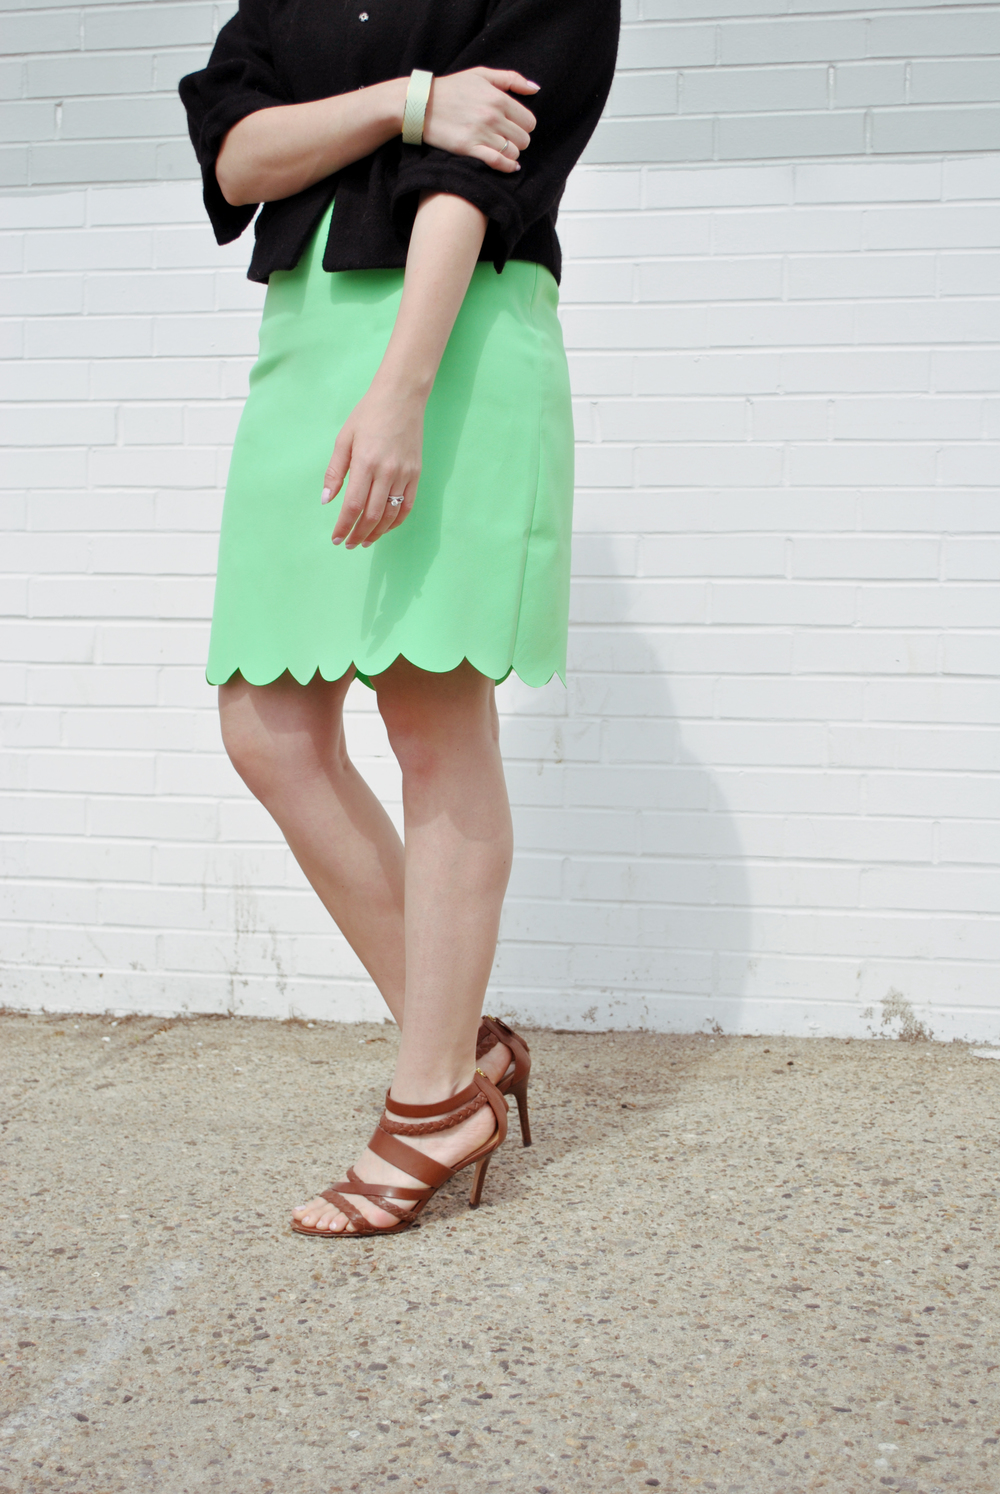 J.crew Factory Scallop Dress // green scallop dress // day to night outfit // preppy outfit // fashion blogger | thoughtfulwish